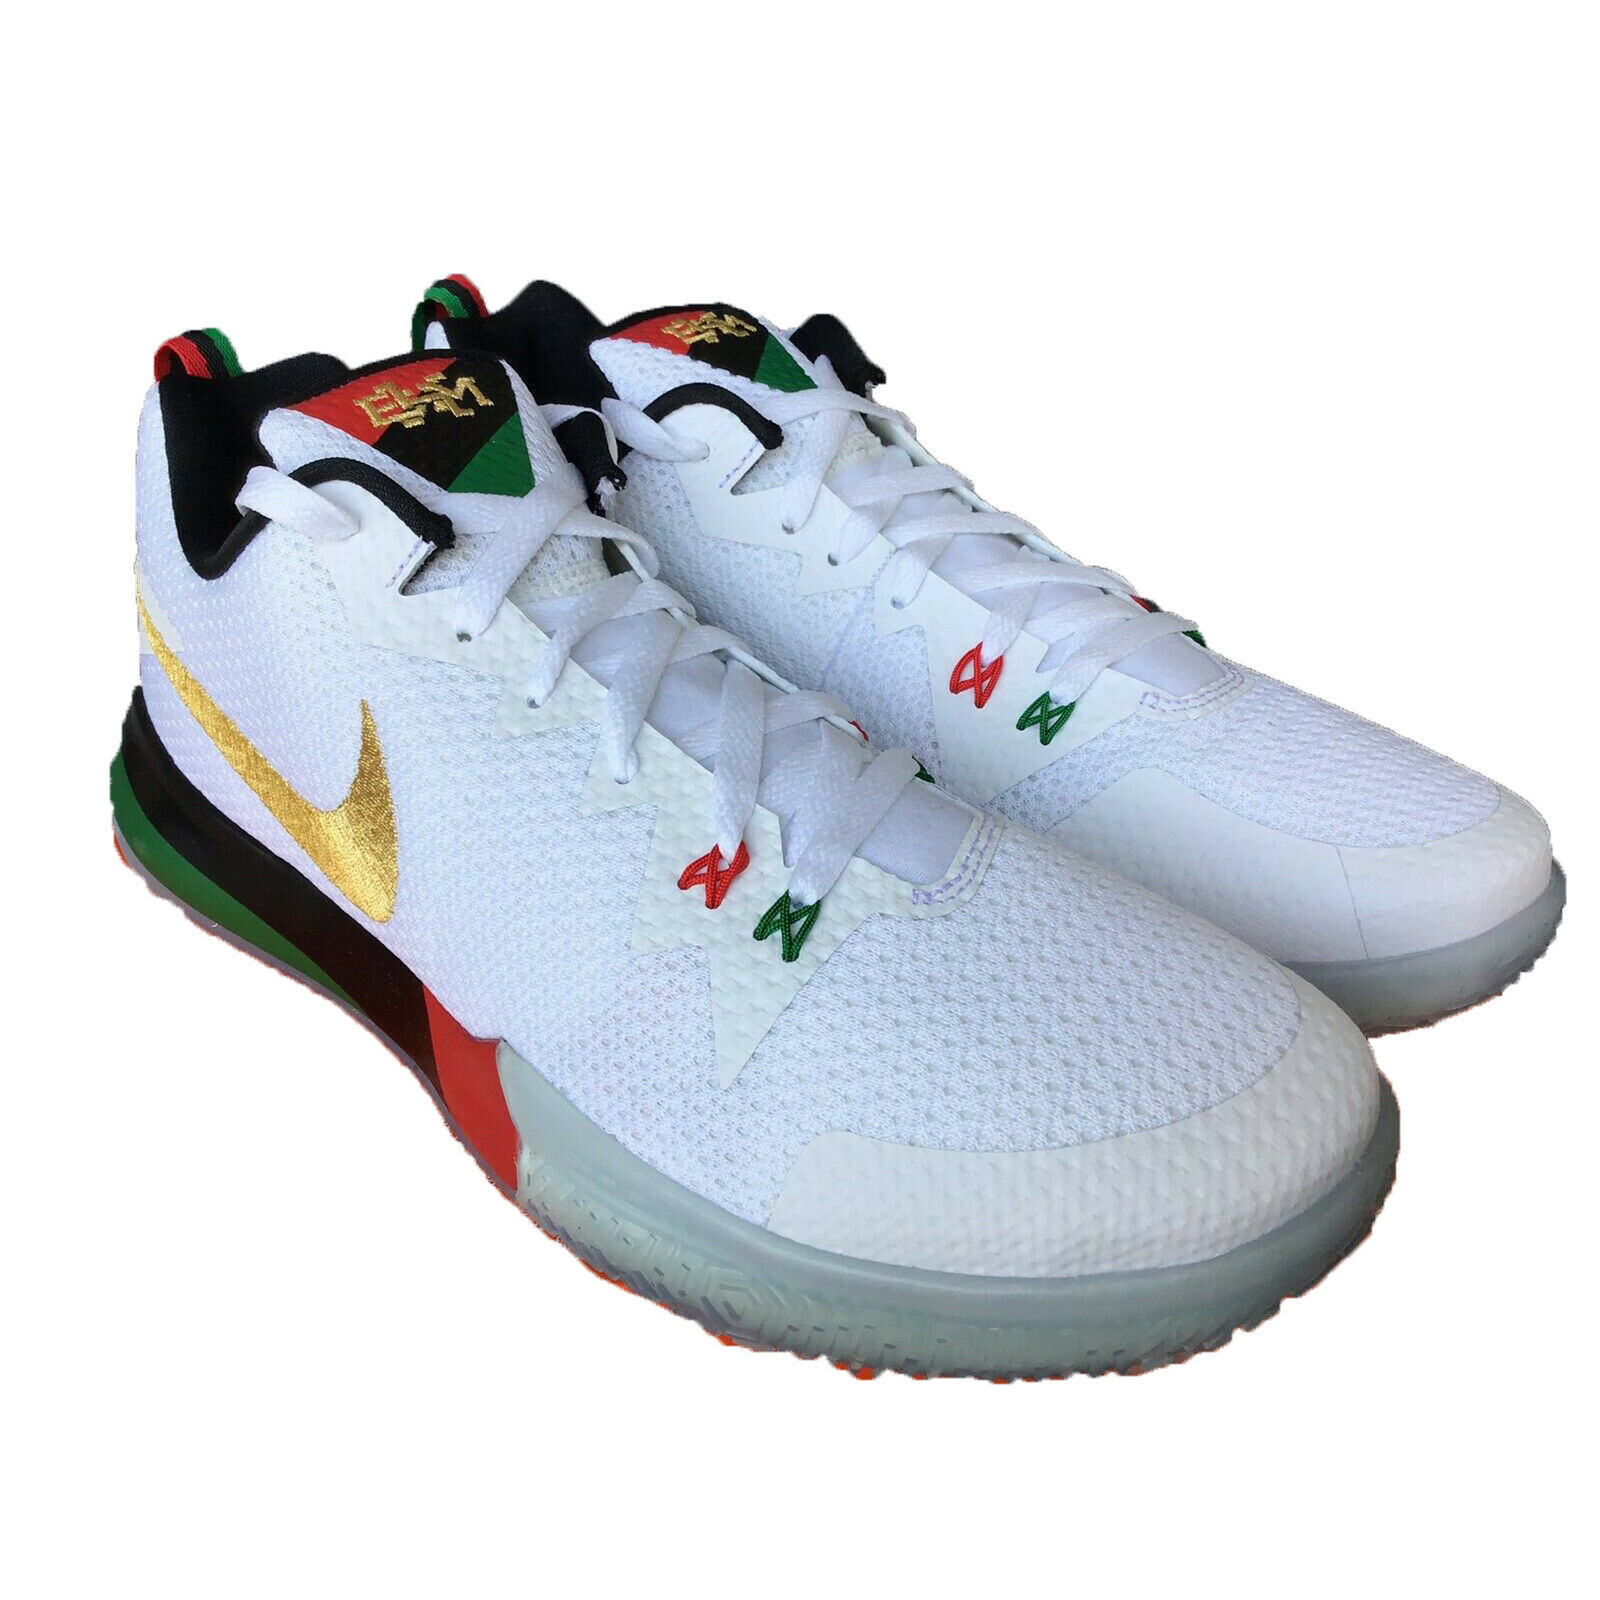 Nike Zoom Live II BHM Promo AQ9580-100 White gold Green Red Men's shoes Sz 13.5